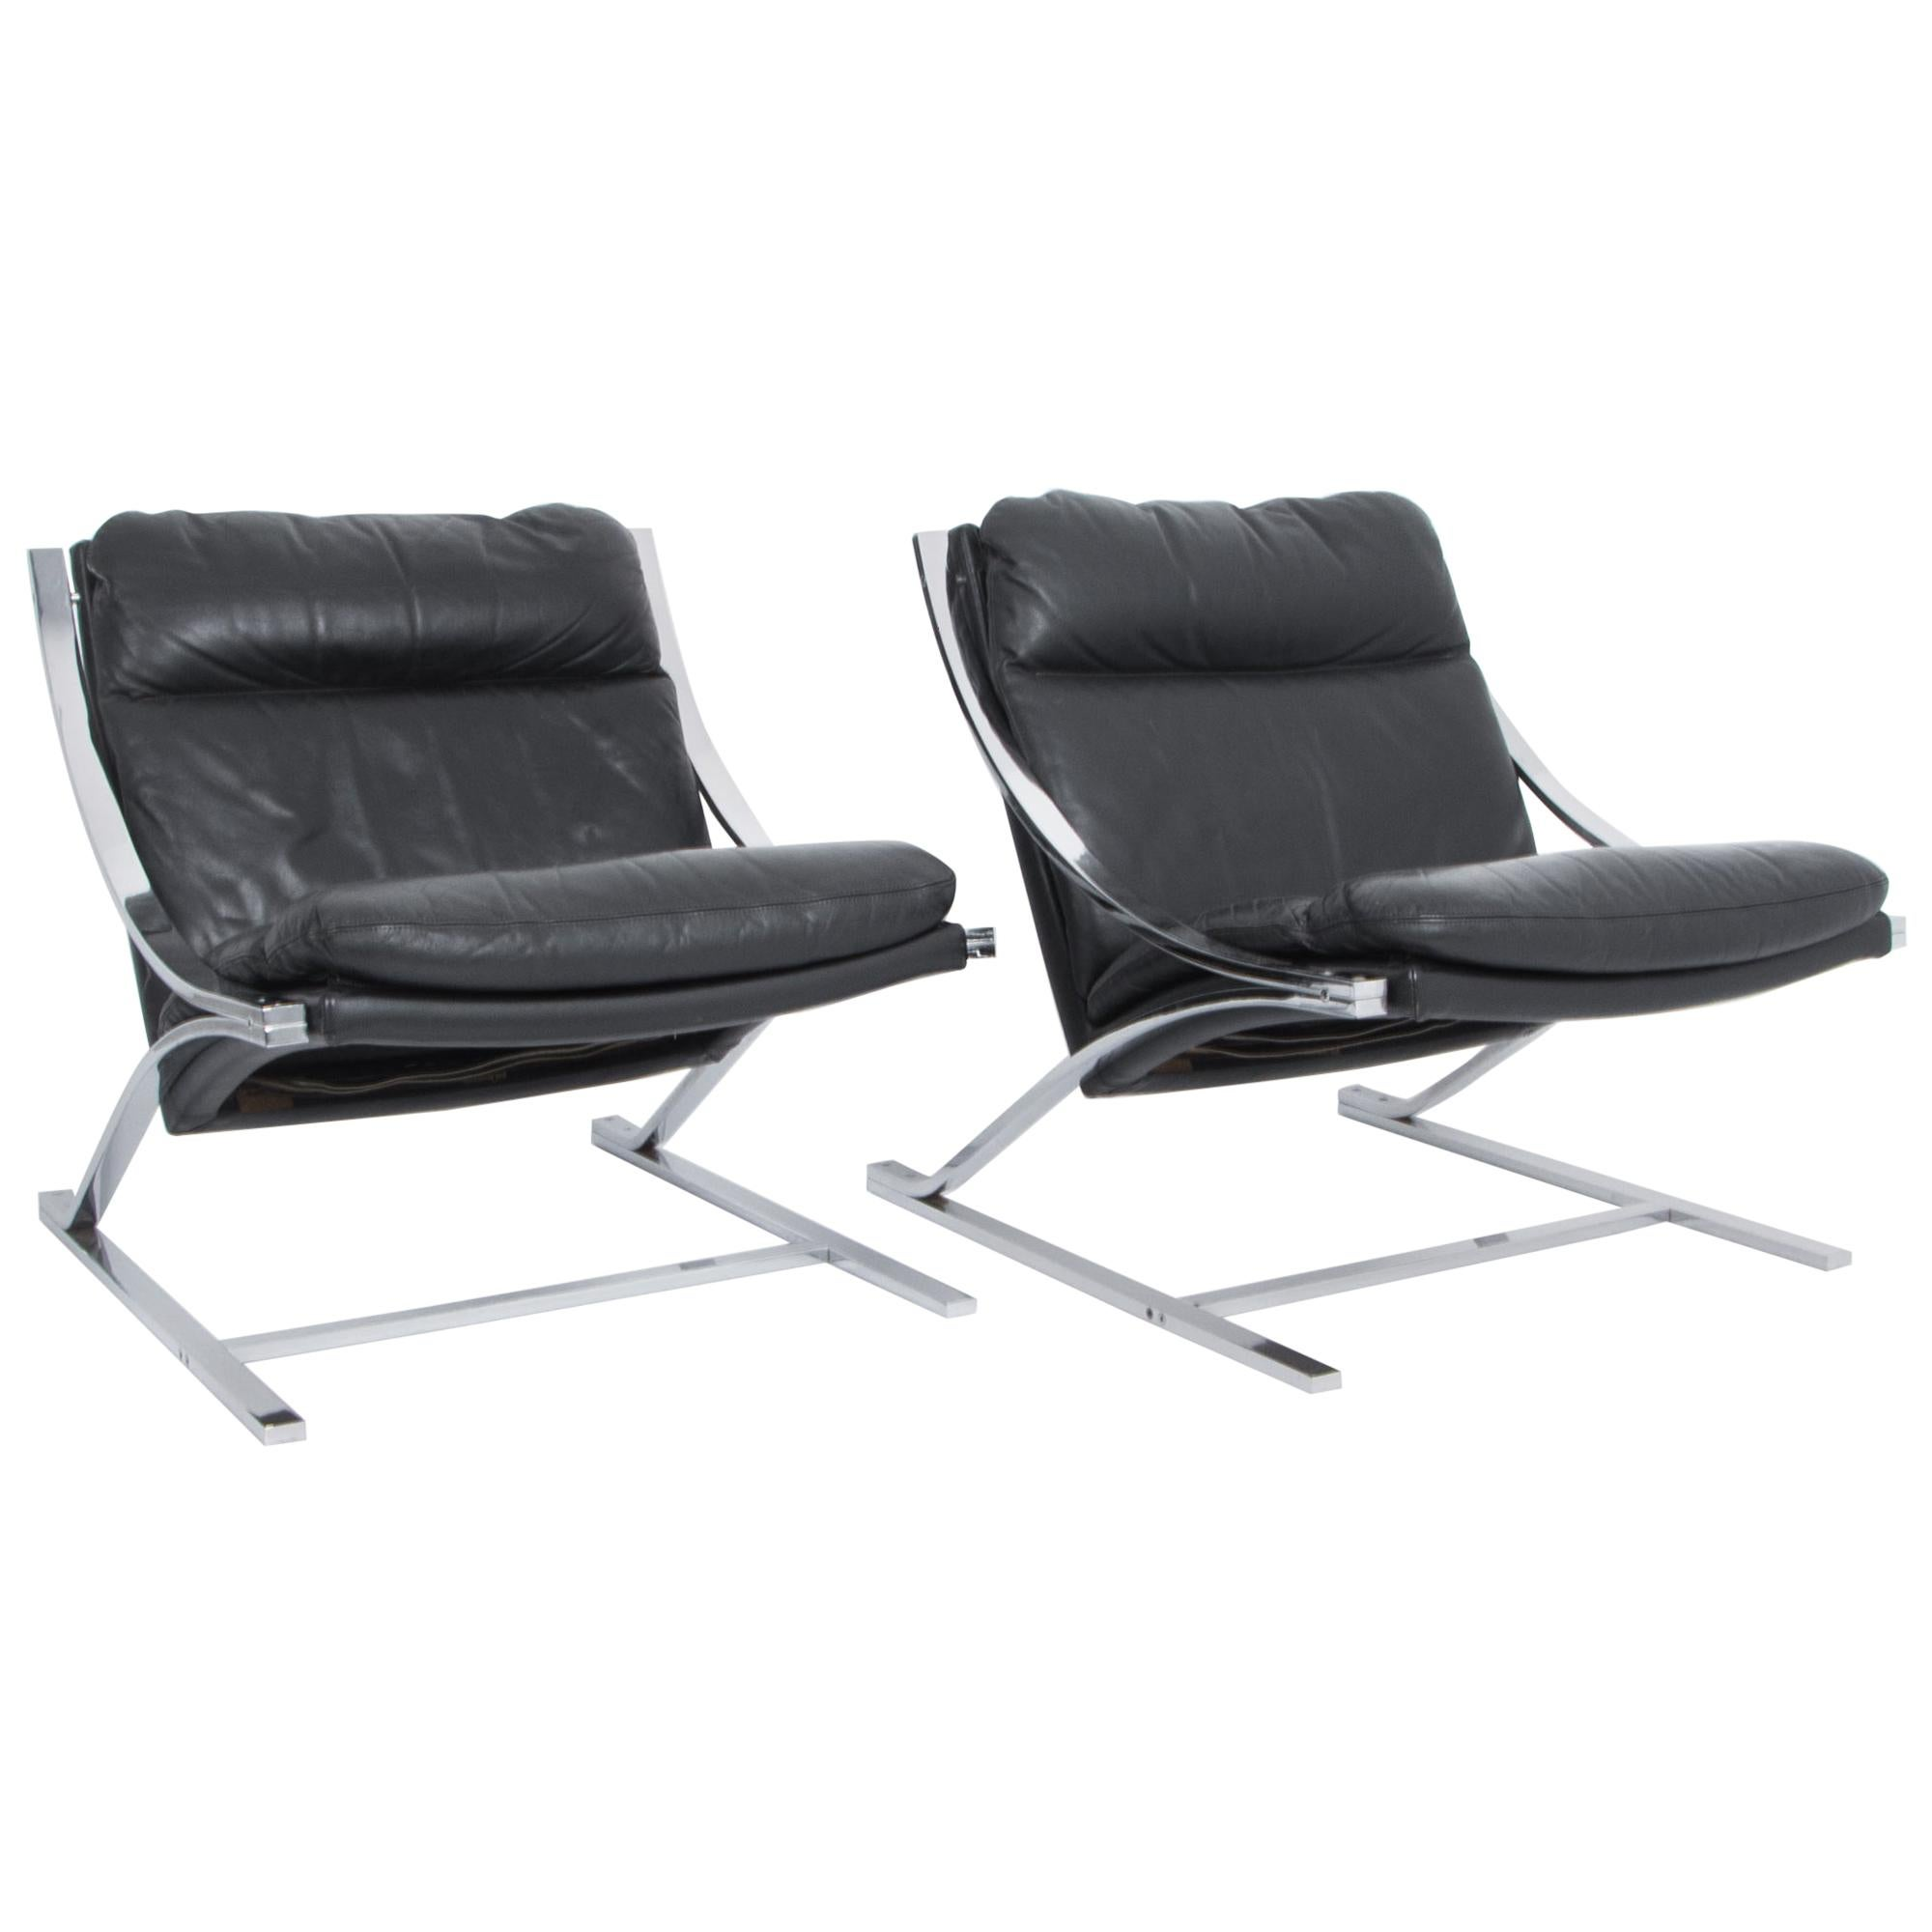 Paul Tuttle Black Leather Zeta Lounge Chairs for Strassle, a Pair